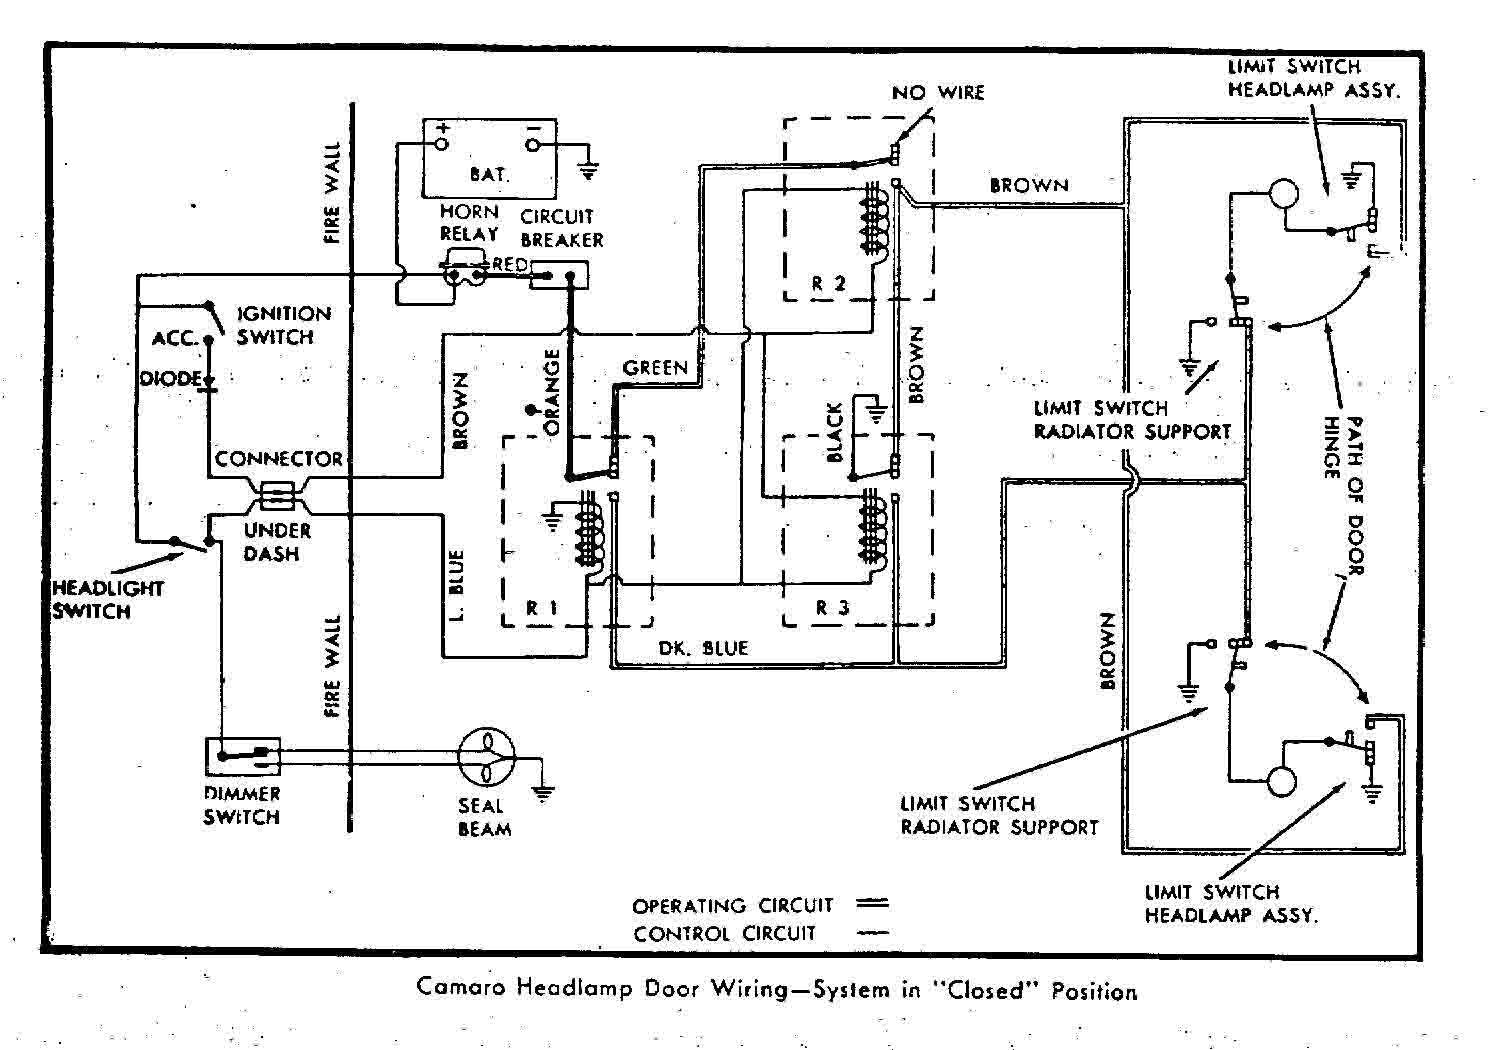 hight resolution of 1967 camaro door latch diagram wiring schematic just wiring data 68 camaro door alinment 67 camaro